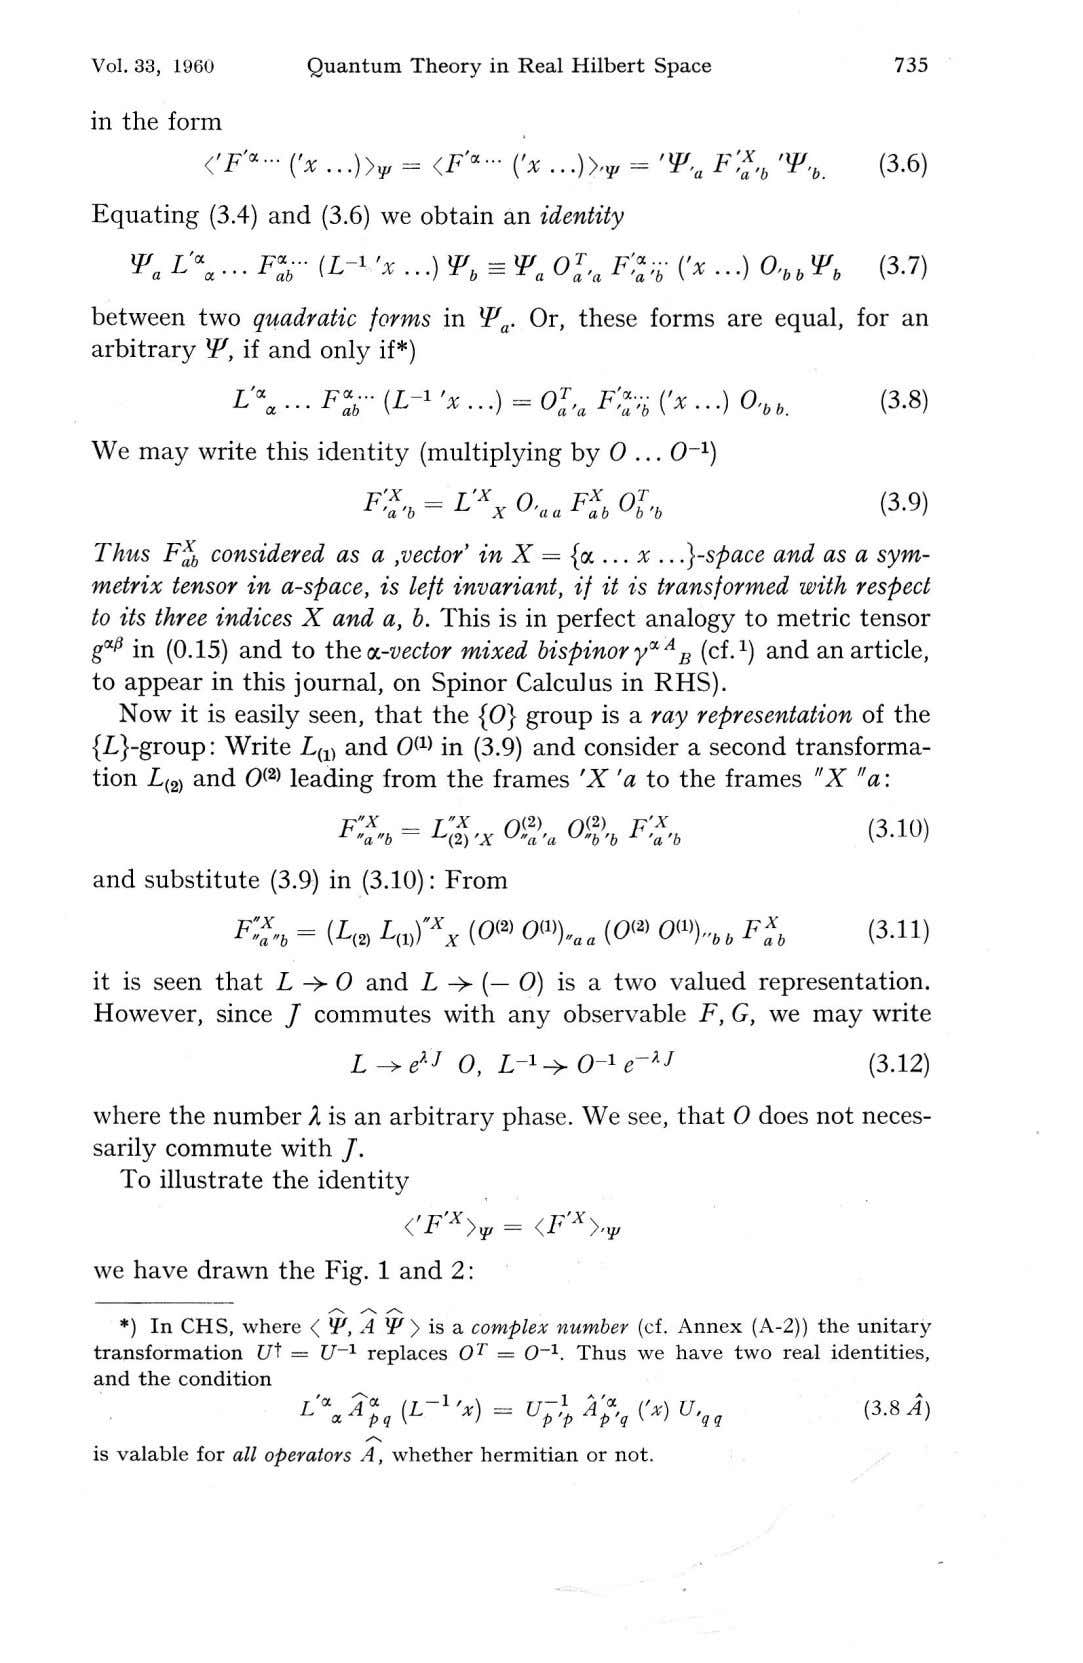 Vol. 33, 1960 Quantum Theory in Real Hilbert Space 735 in the form <'F'*- ('*